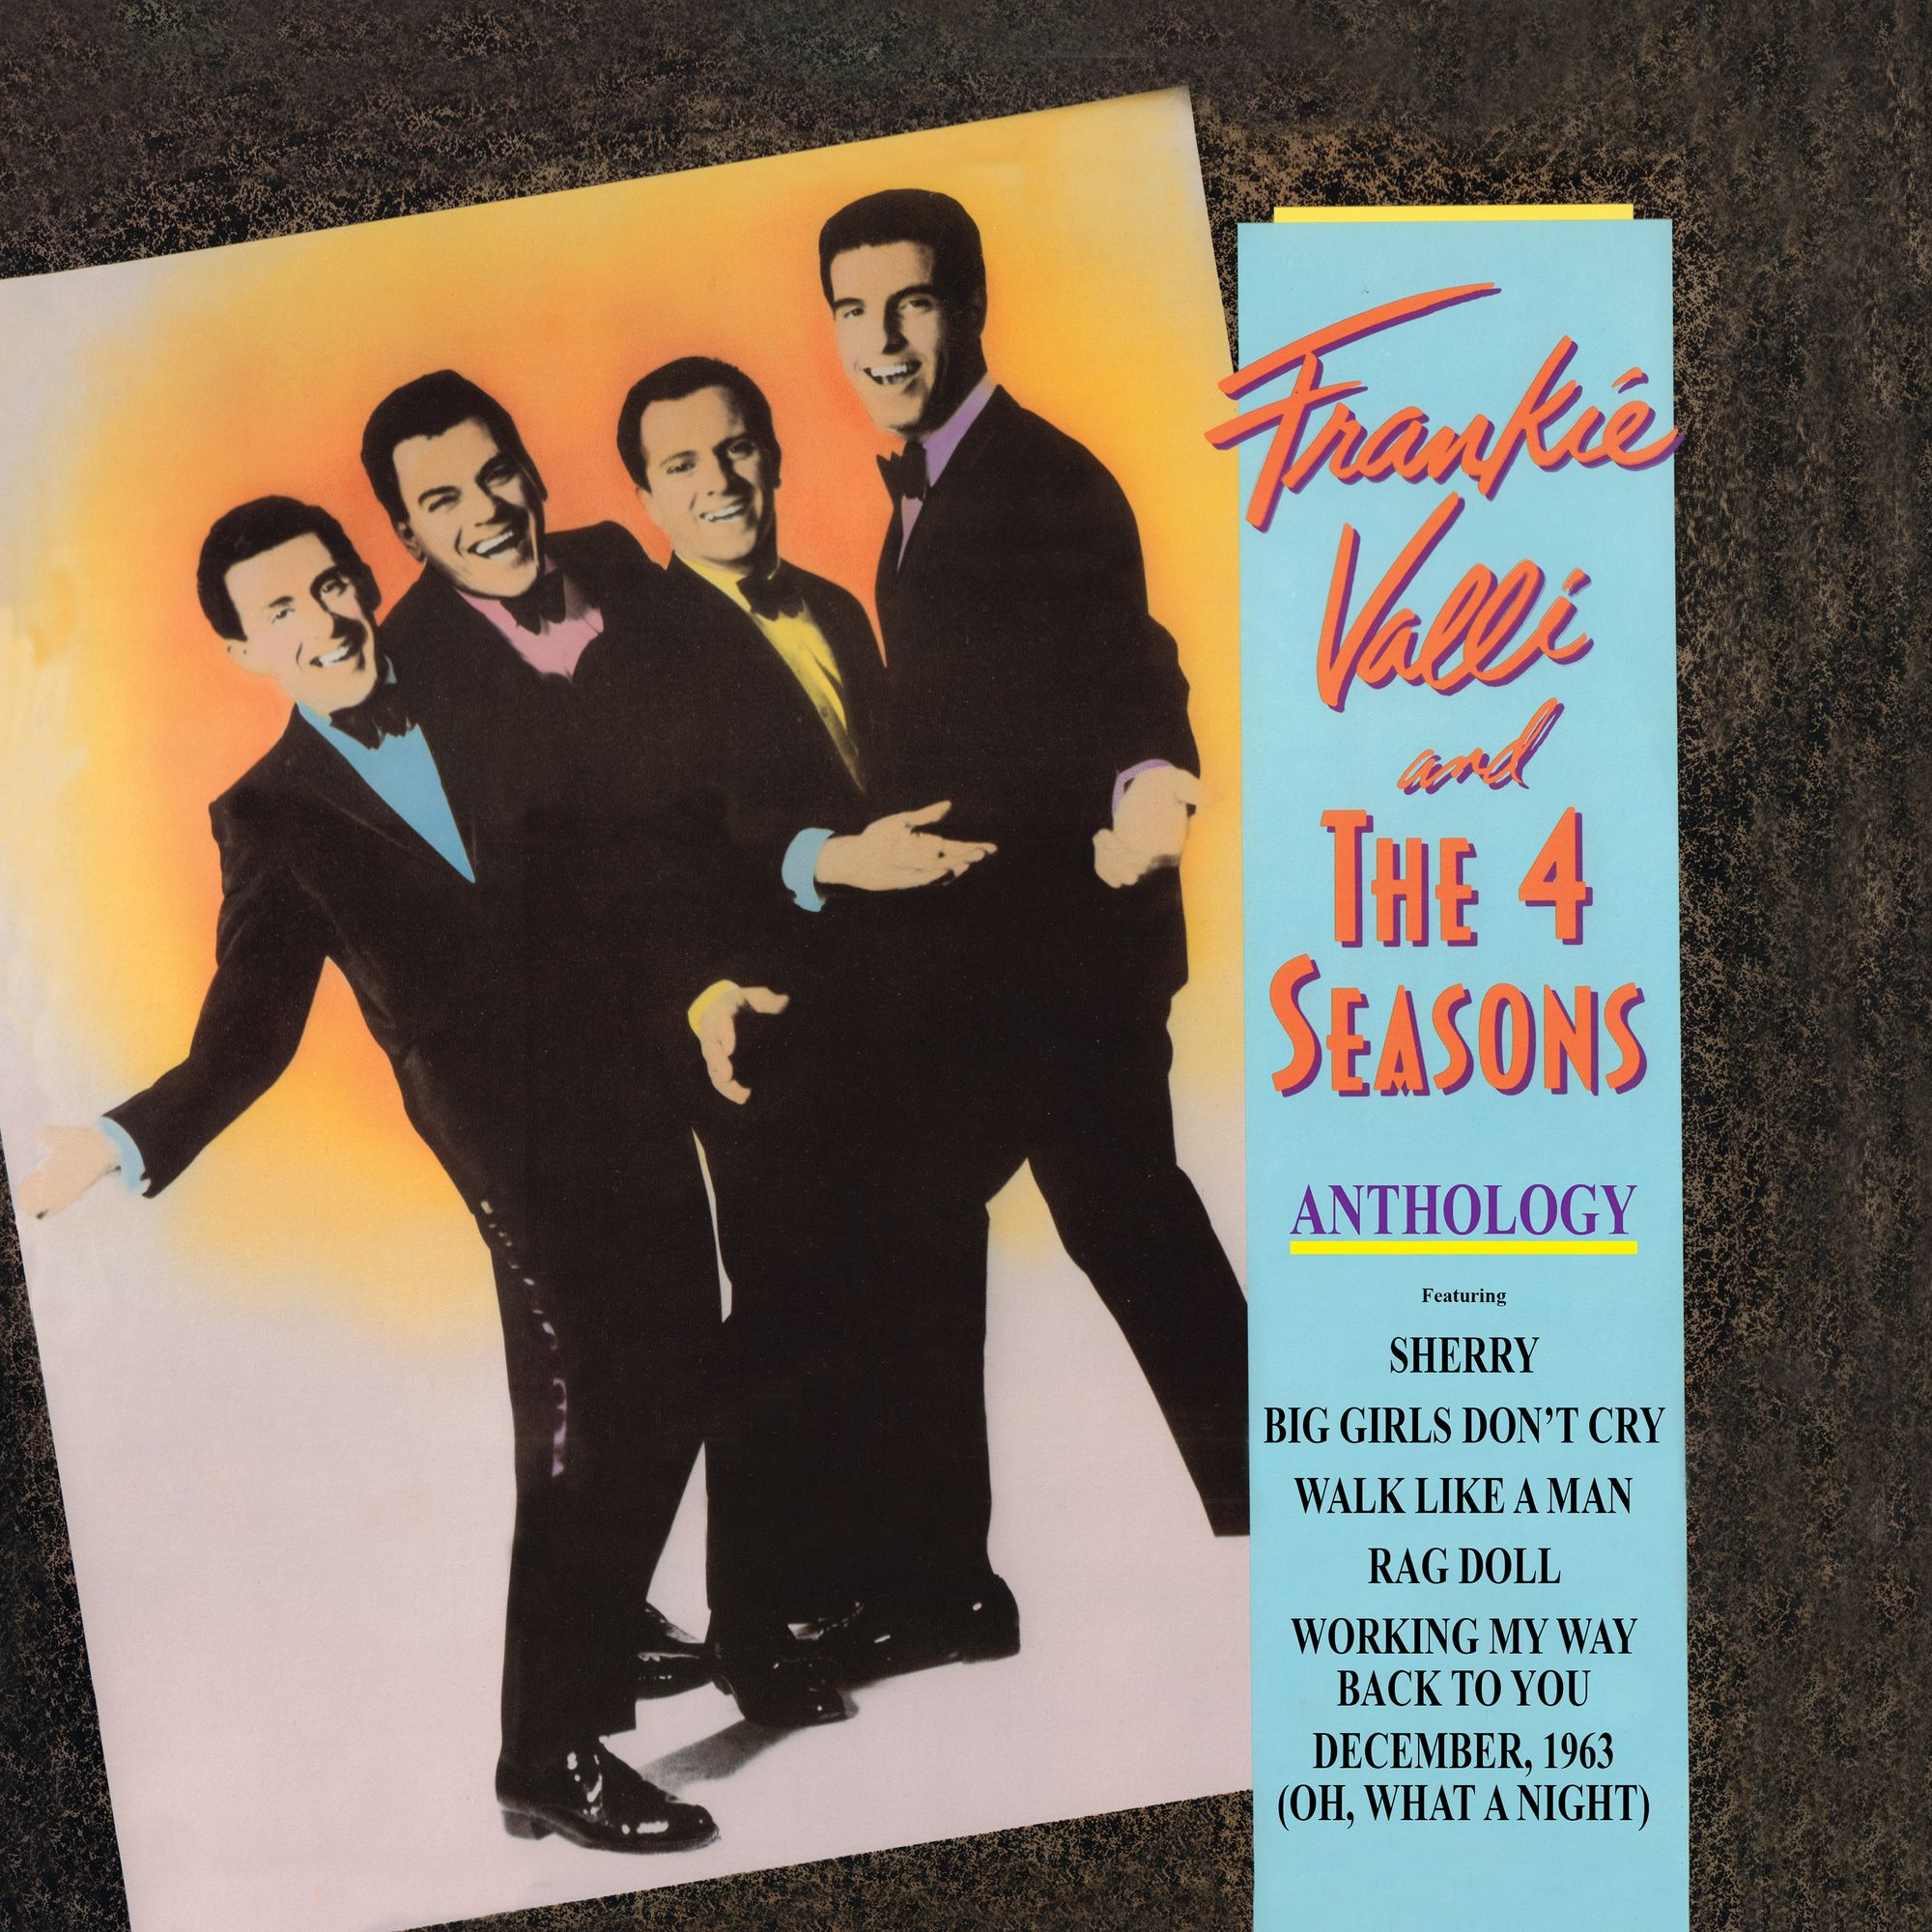 Frankie Valli & The 4 Seasons - Anthology-Greatest Hits (180 Gram Audiophile Vinyl/Limited Anniversary Edition/Gatefold Cover)